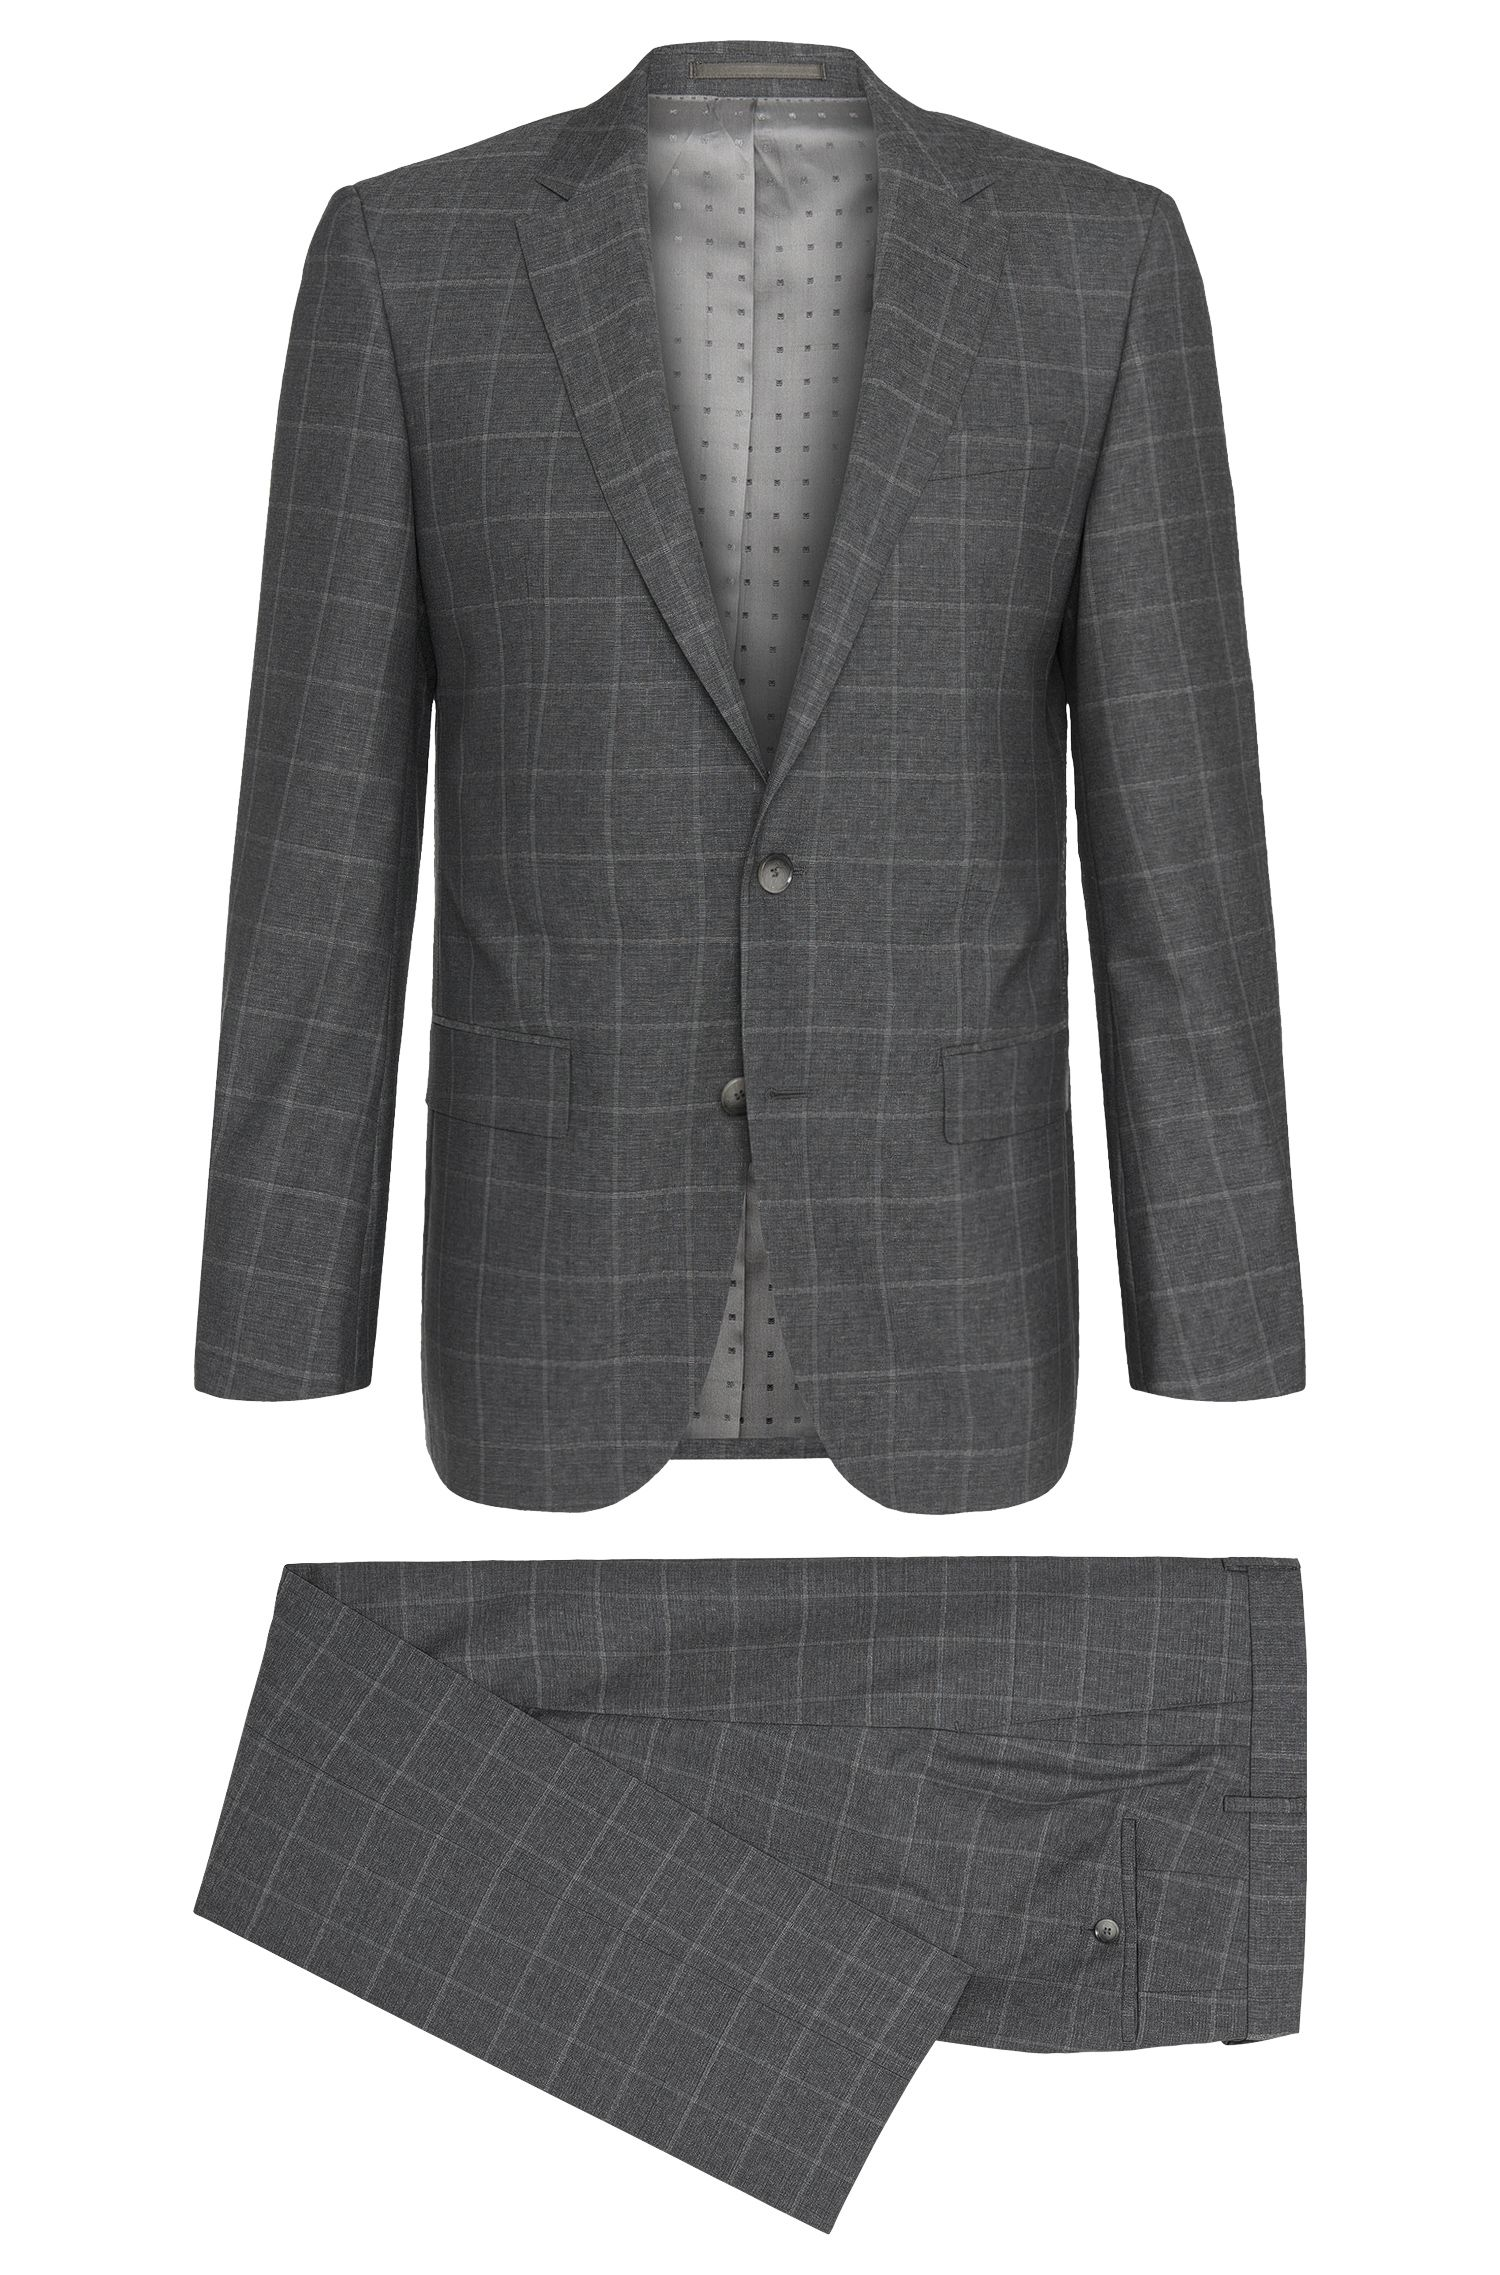 'T-Harvers/Glover' | Slim Fit, Italian Virgin Wool Suit